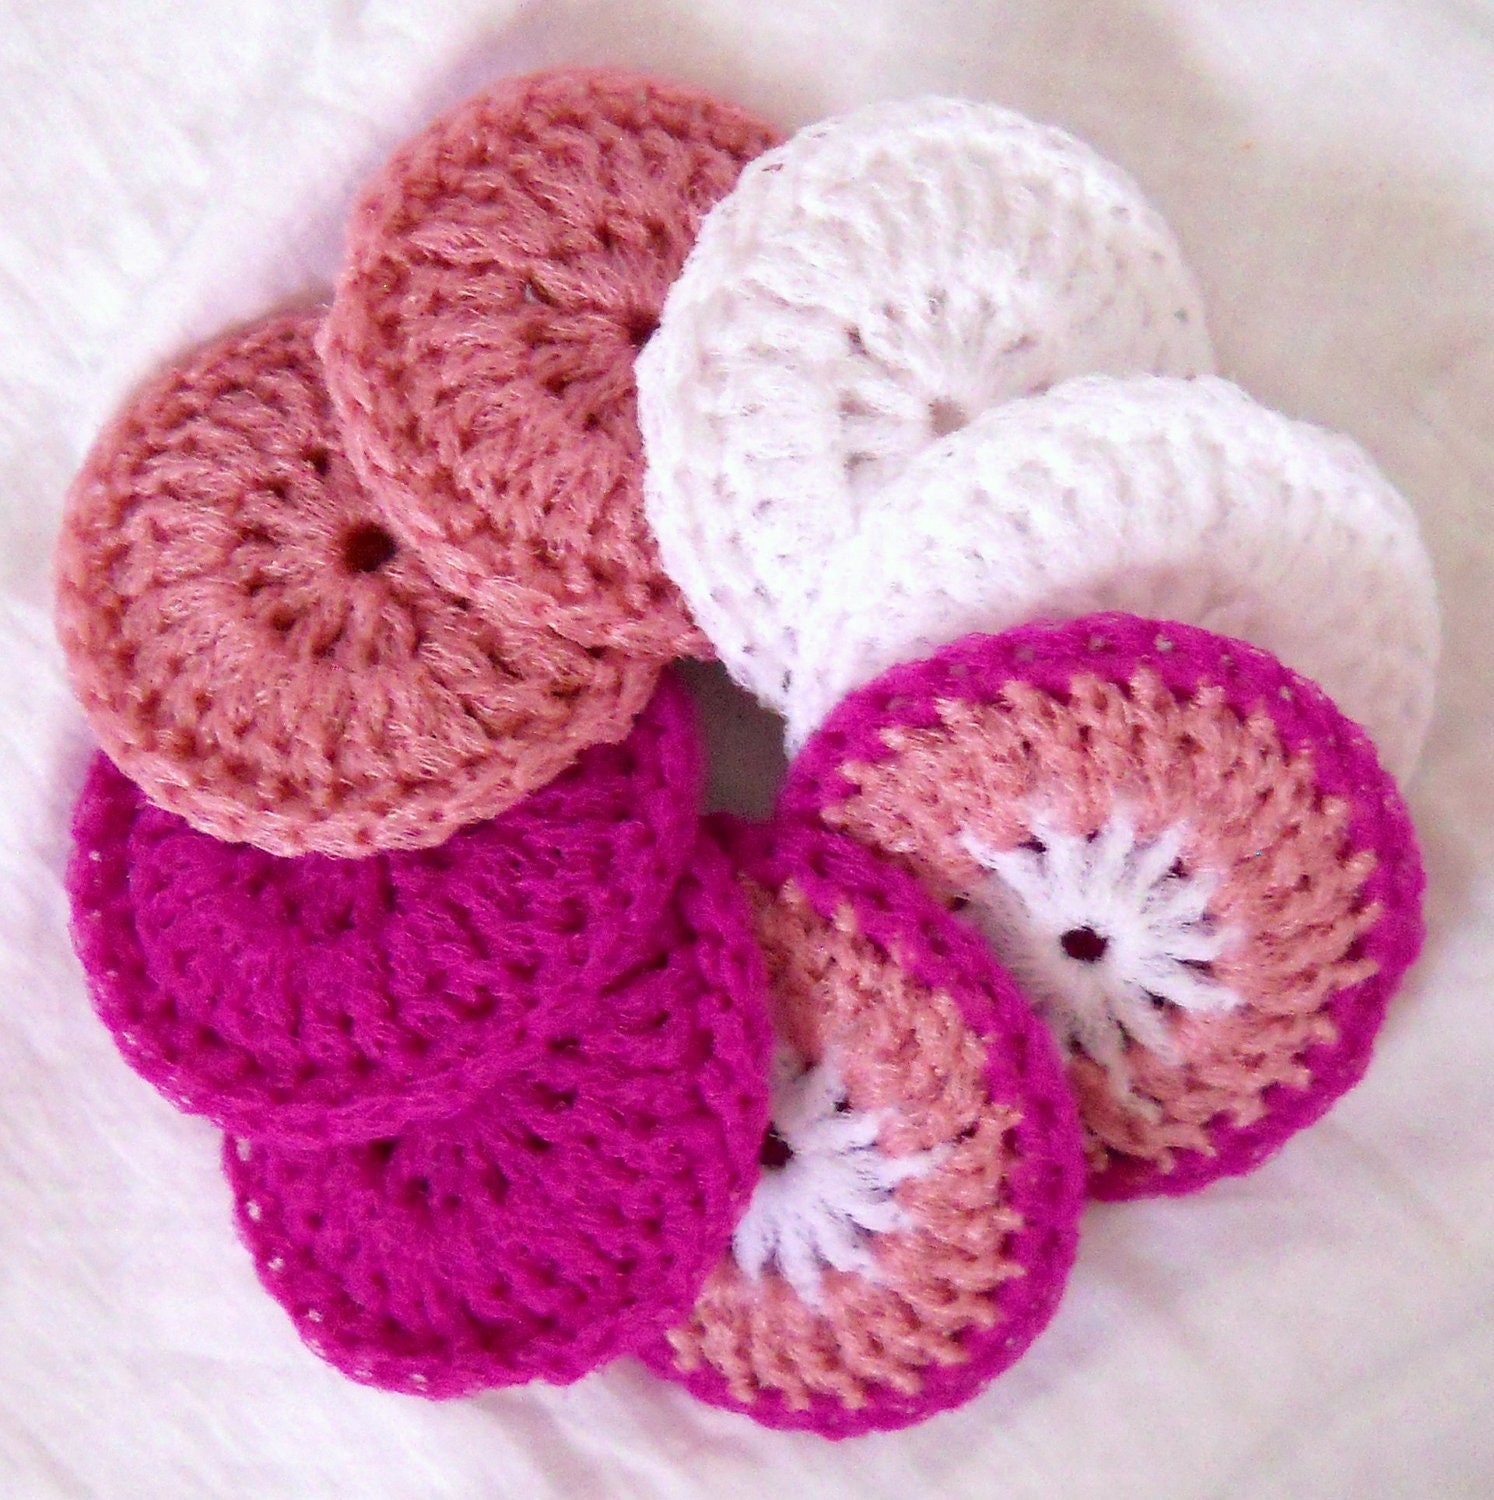 Crocheting Scrubbies With Netting : Crochet Nylon Dish Scrubbies - Set of 8 - Valentine Collection - Pink ...